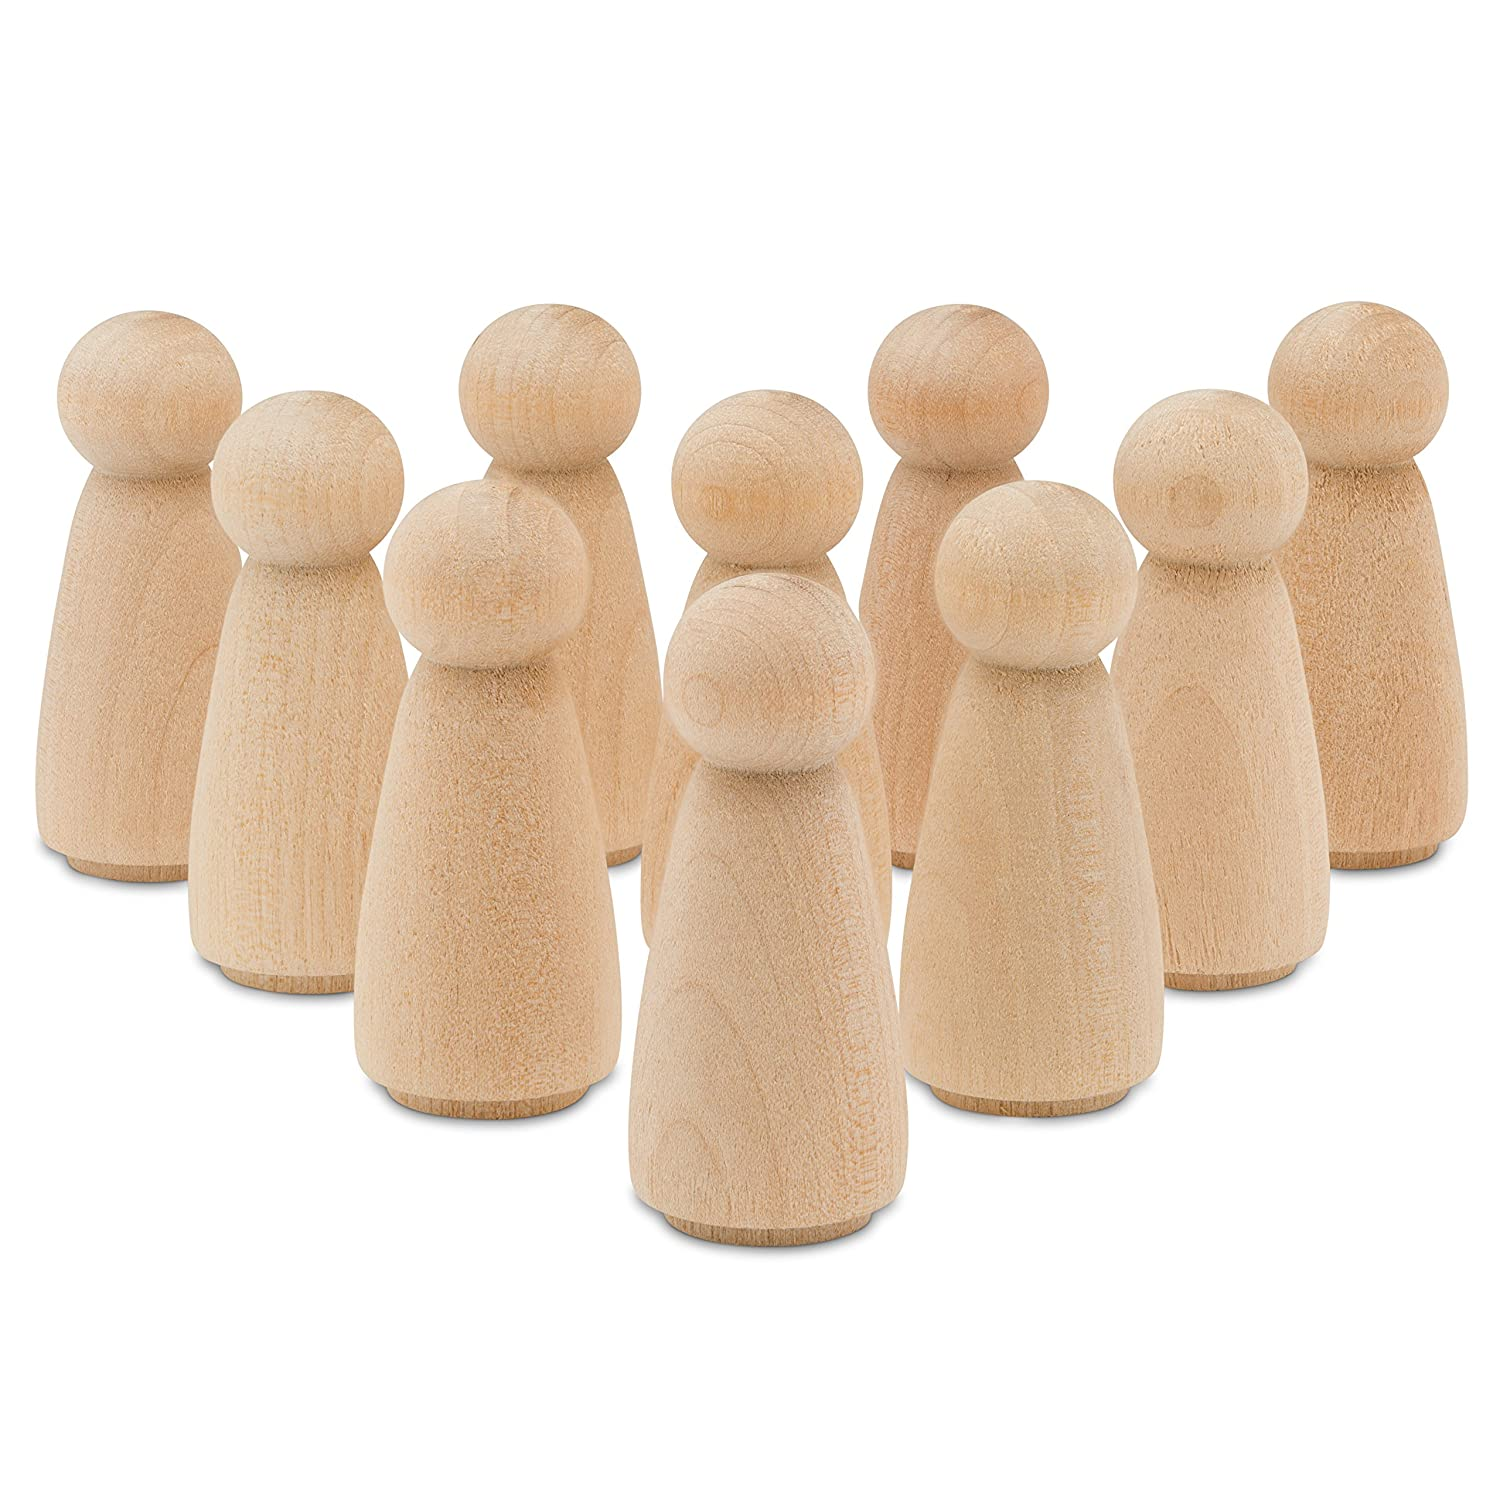 Unfinished Wood Angel Dolls 2 inch | Bag of 50 Angle Peg Dolls | From Birch - By Woodpeckers BCAC22790